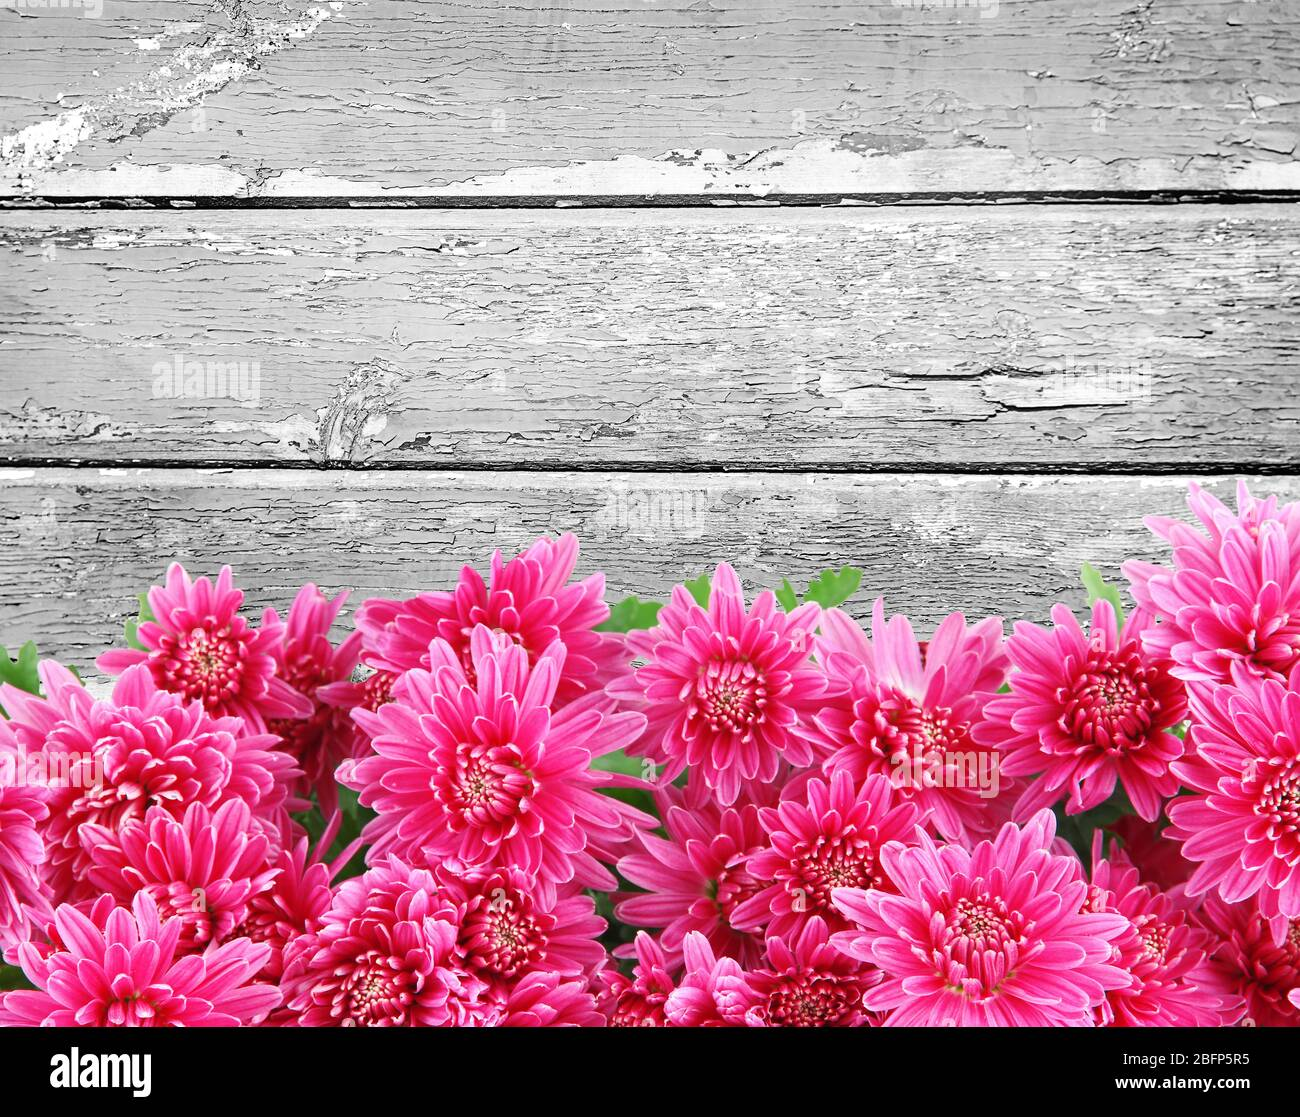 Beautiful Flowers On Vintage Wooden Background Stock Photo Alamy